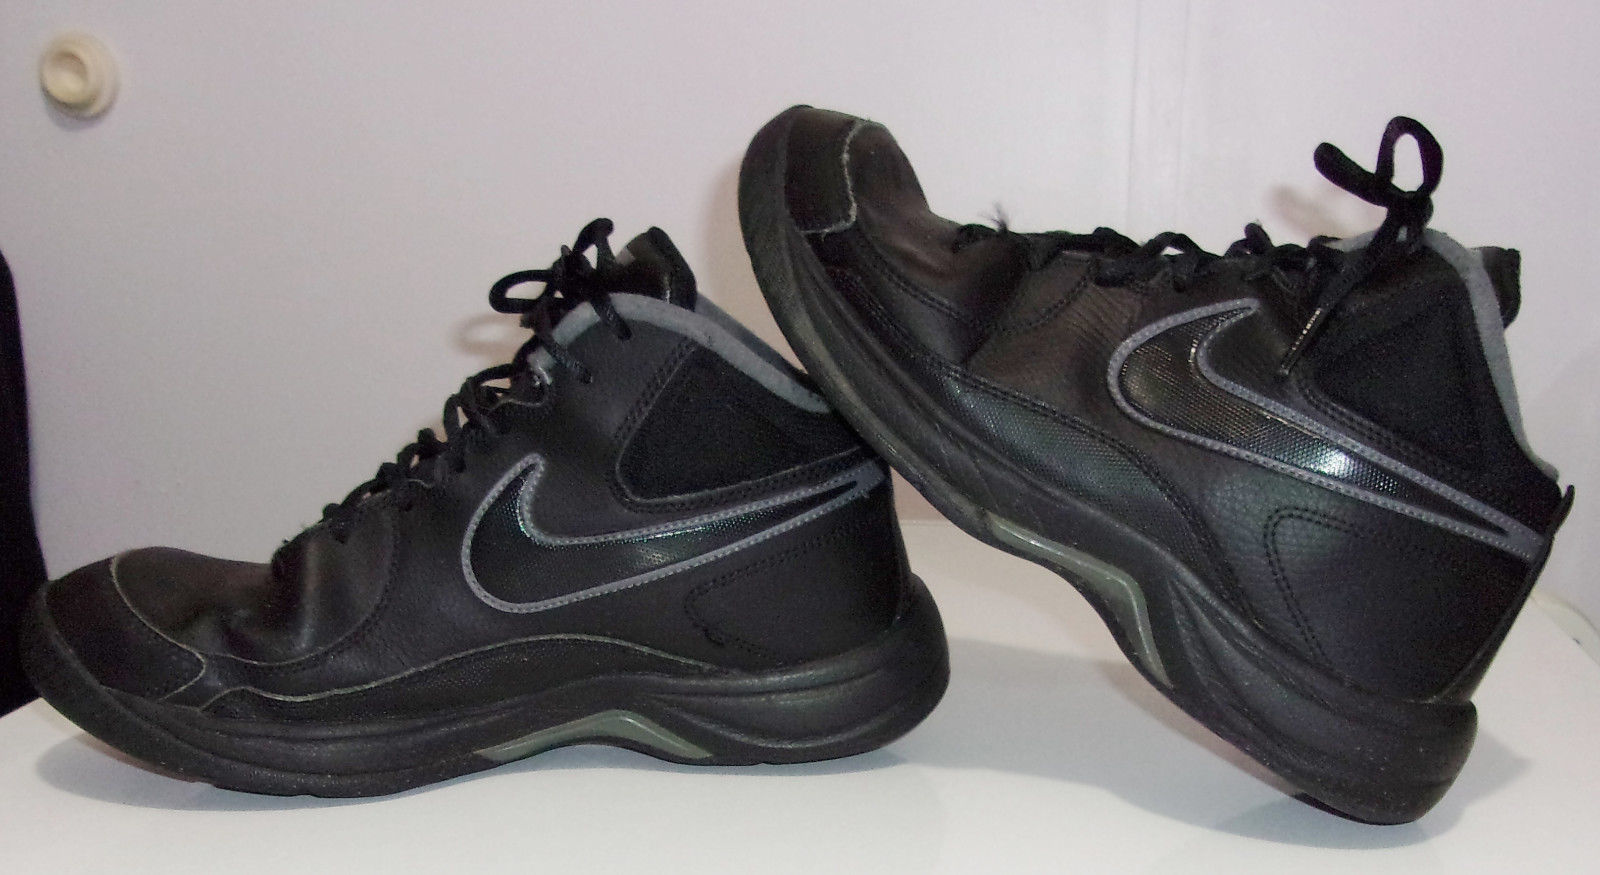 Nike 9.5 Black Leather Lace Up Athletic Basketball Sneakers Shoes 511372-010